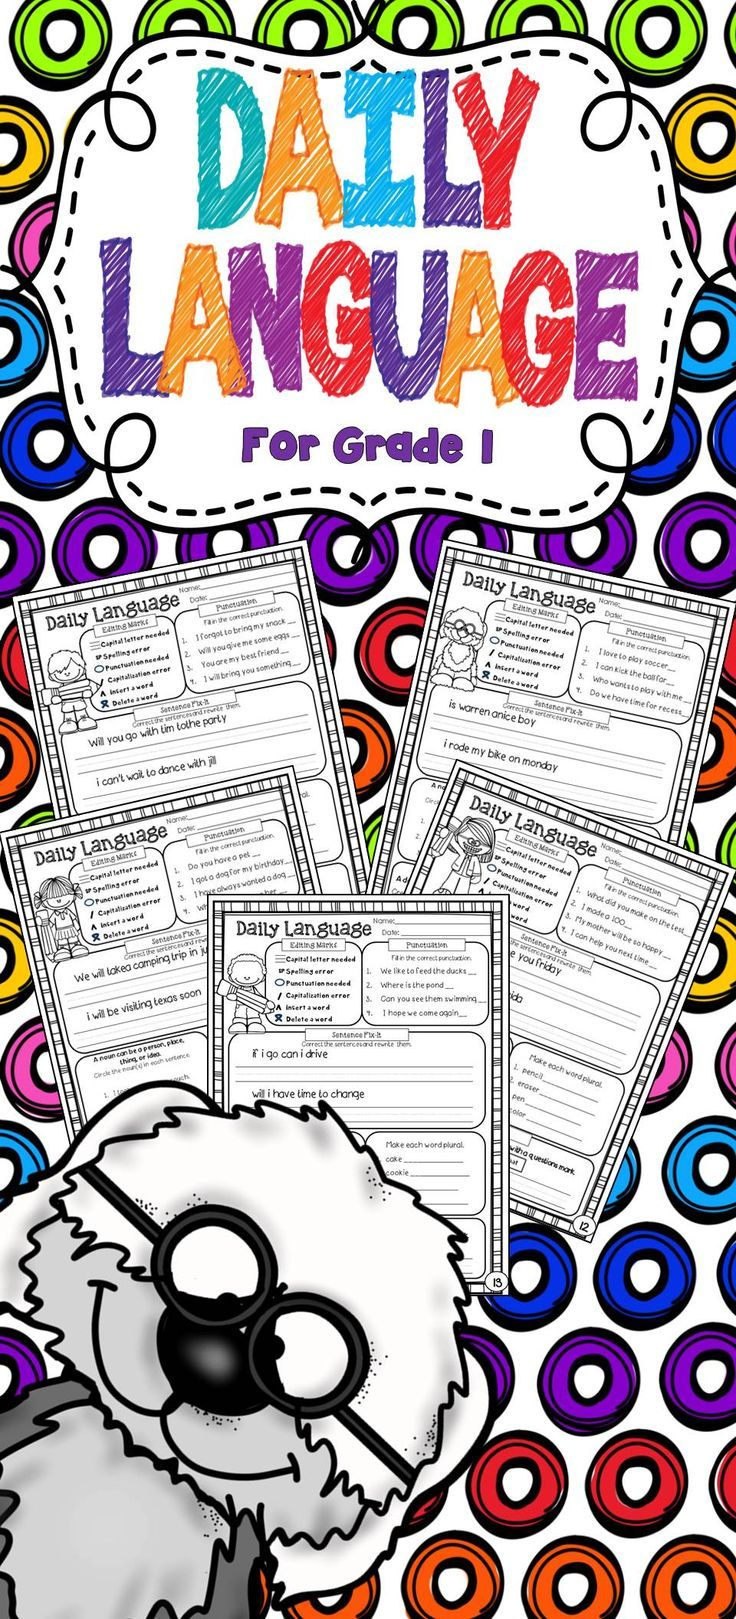 Great daily grammar practice. We all love it! The students love the challenge and I love seeing them engaged.